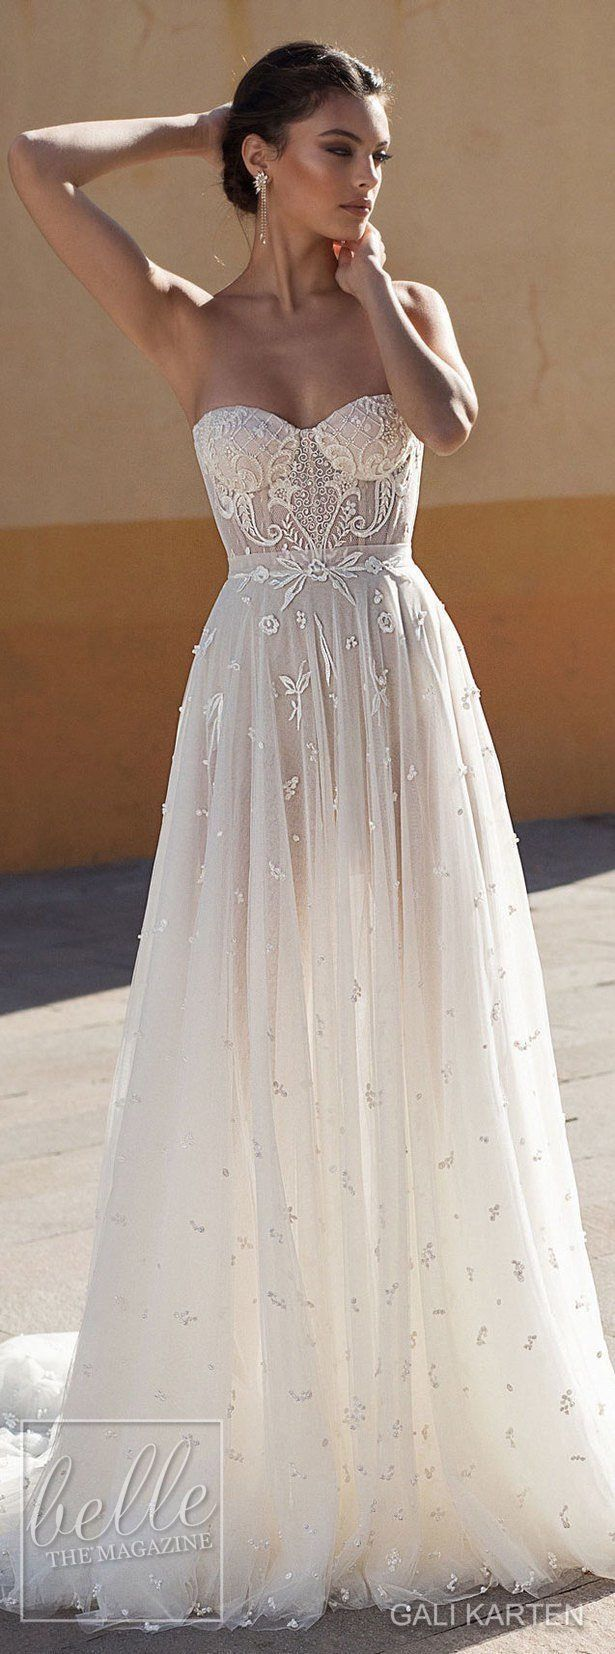 Gali karten wedding dresses burano bridal collection ropita